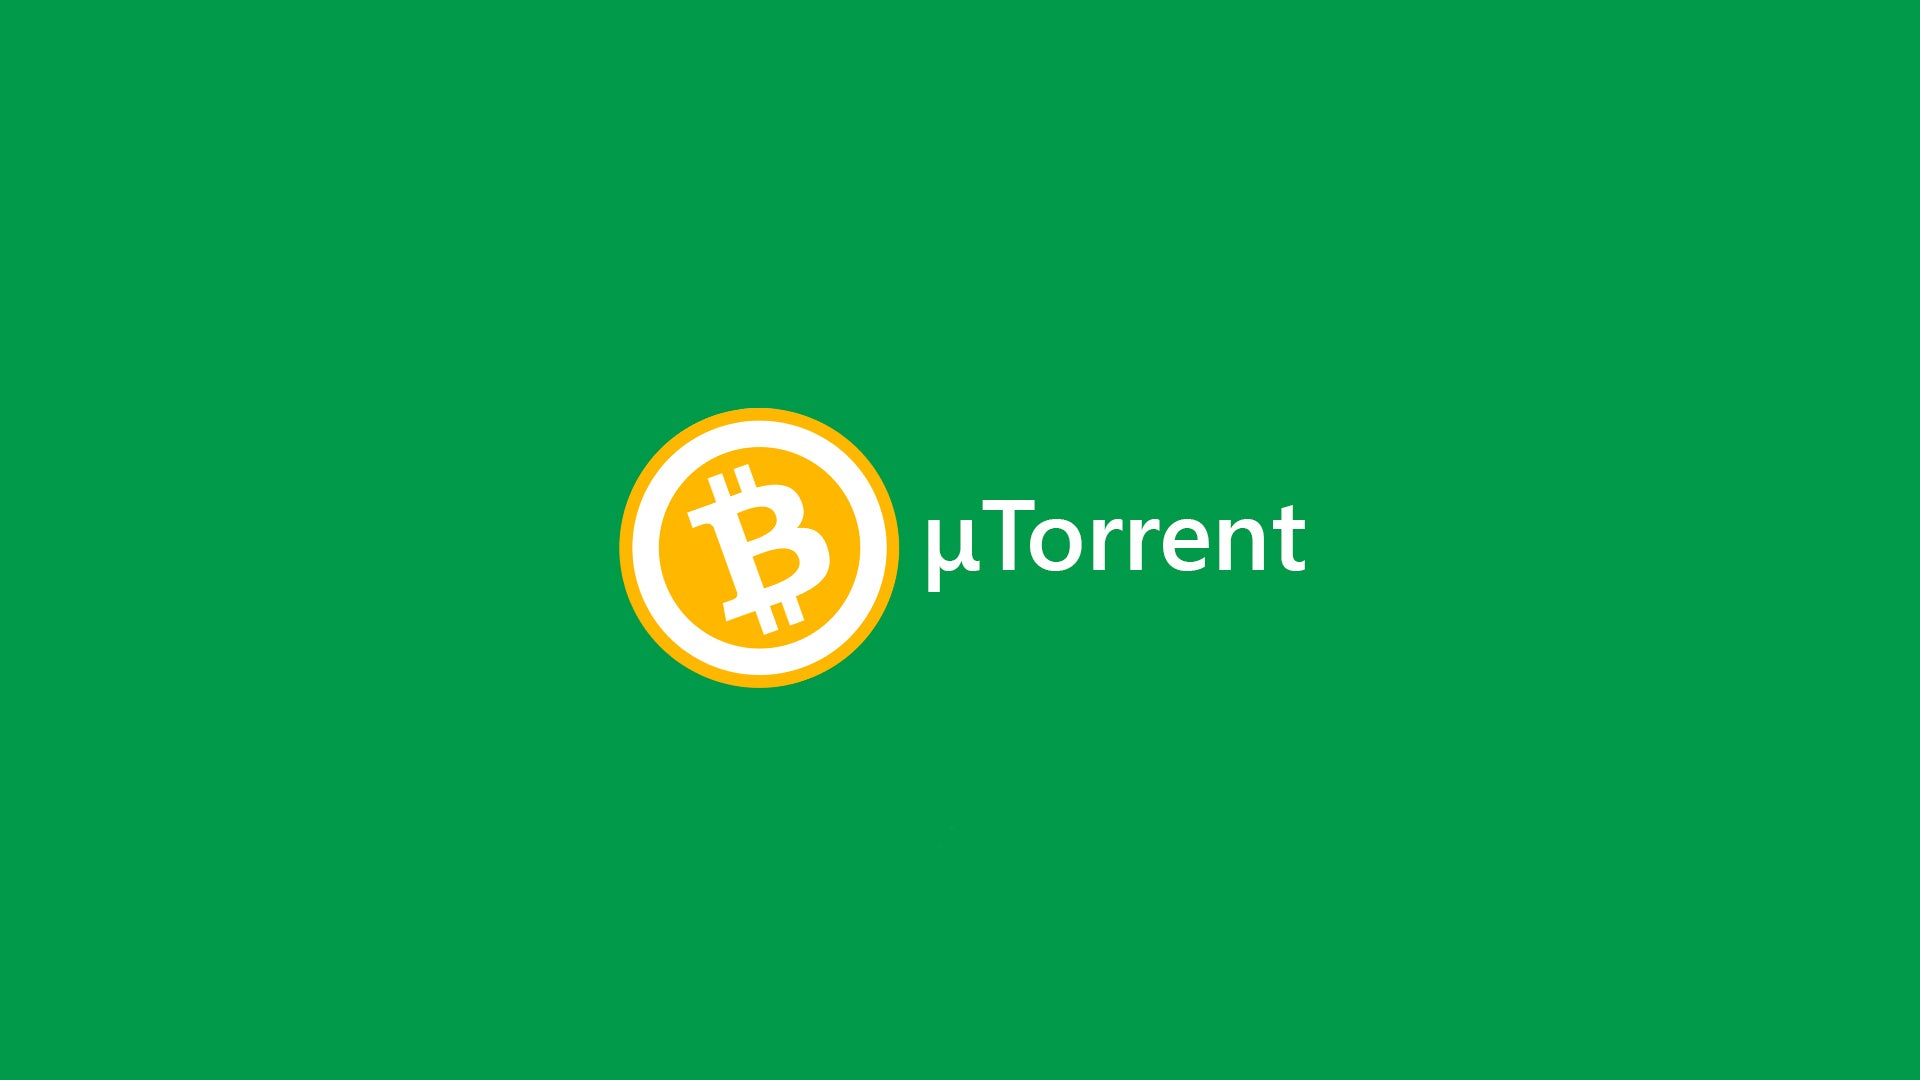 Your Torrent Client Might Be Mining Bitcoin Without Telling You